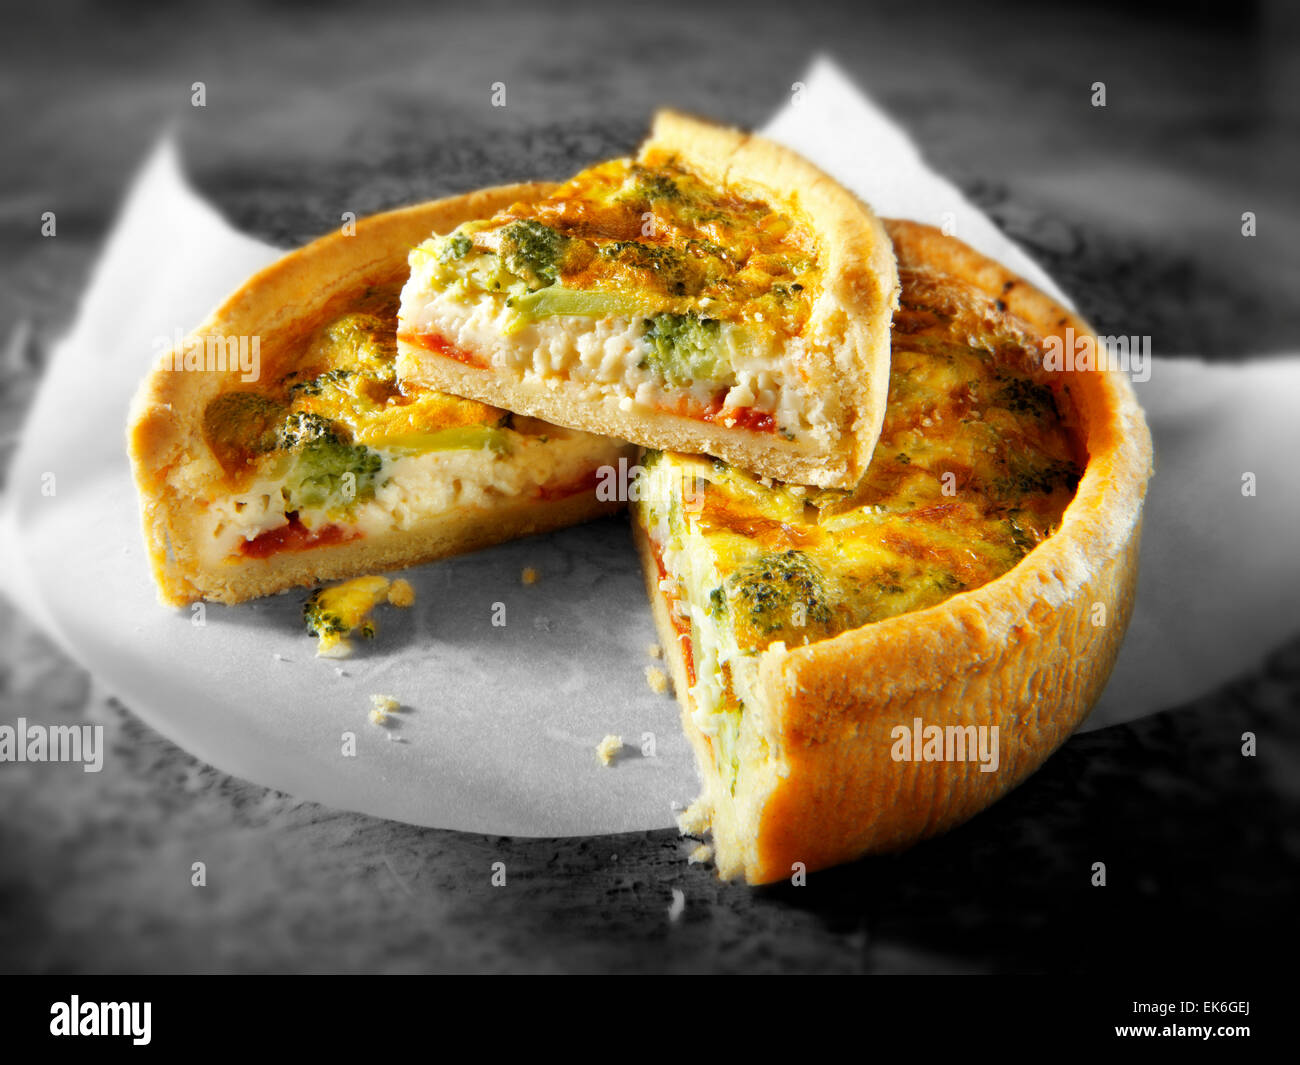 Whole cooked brocoli quiche with a slice out - Stock Image